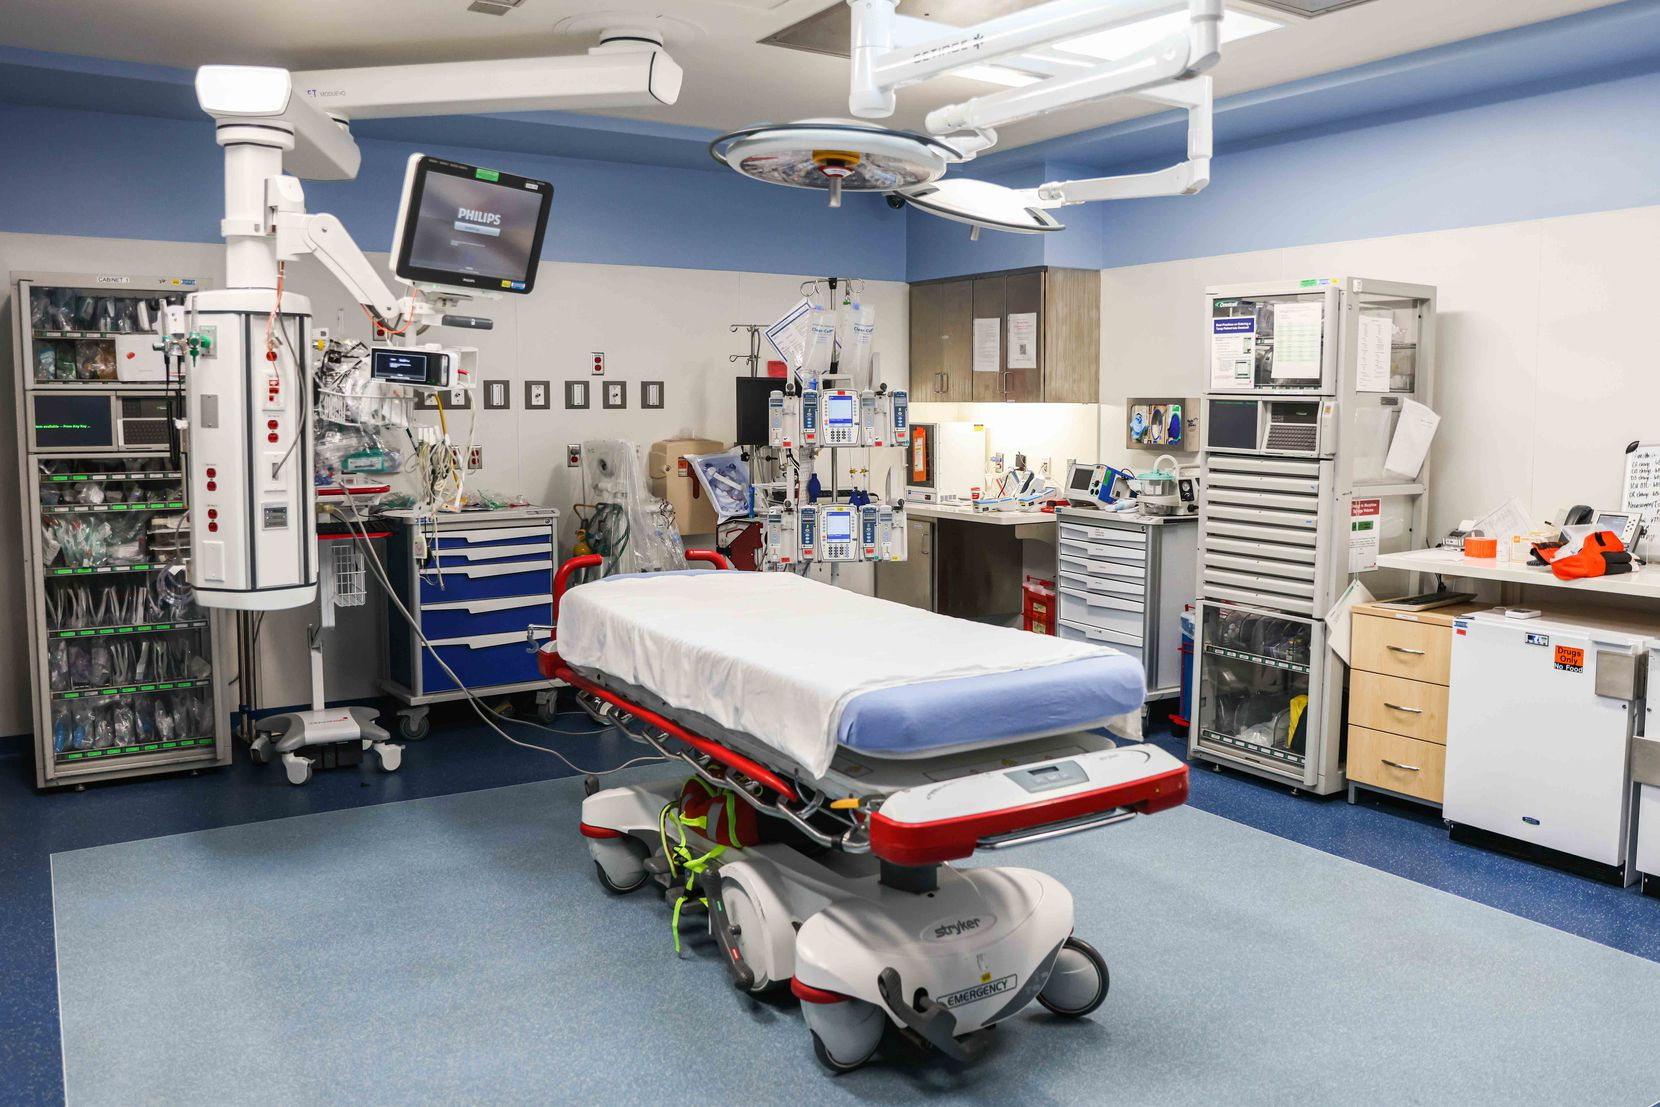 Trauma room at the Children's Medical Center in Dallas on Wednesday, June 16, 2021. (Lola Gomez/The Dallas Morning News)